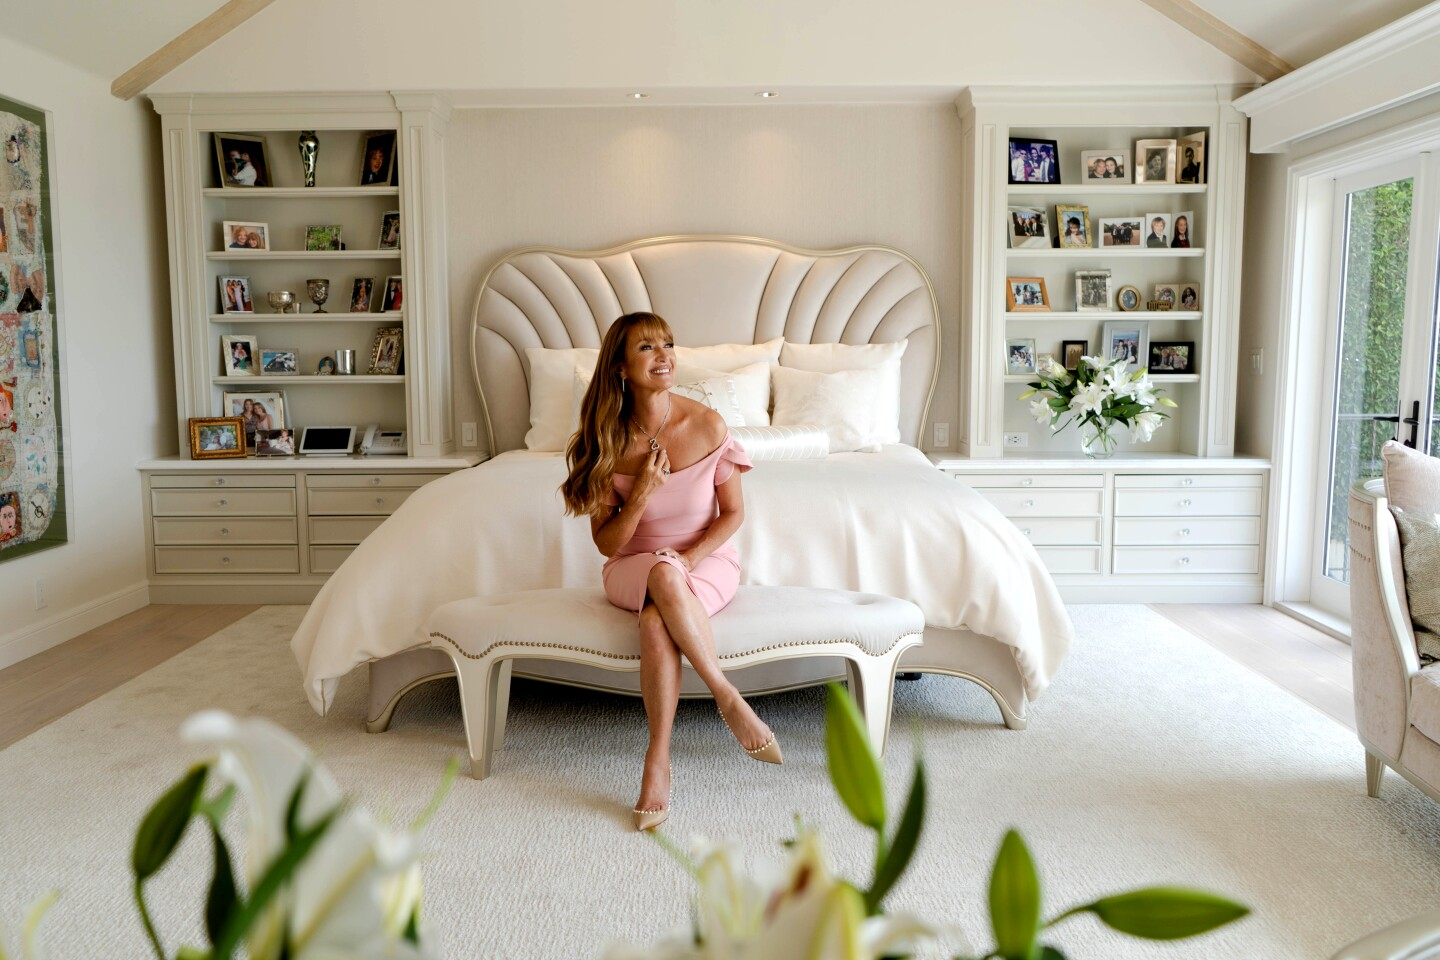 Actress Jane Seymour in her favorite room — her bedroom in her modern, 6,300-square-foot Tudor-style home, perched on a coastal hill in Malibu. Photographed on (Jesse Goddard / For The Times)